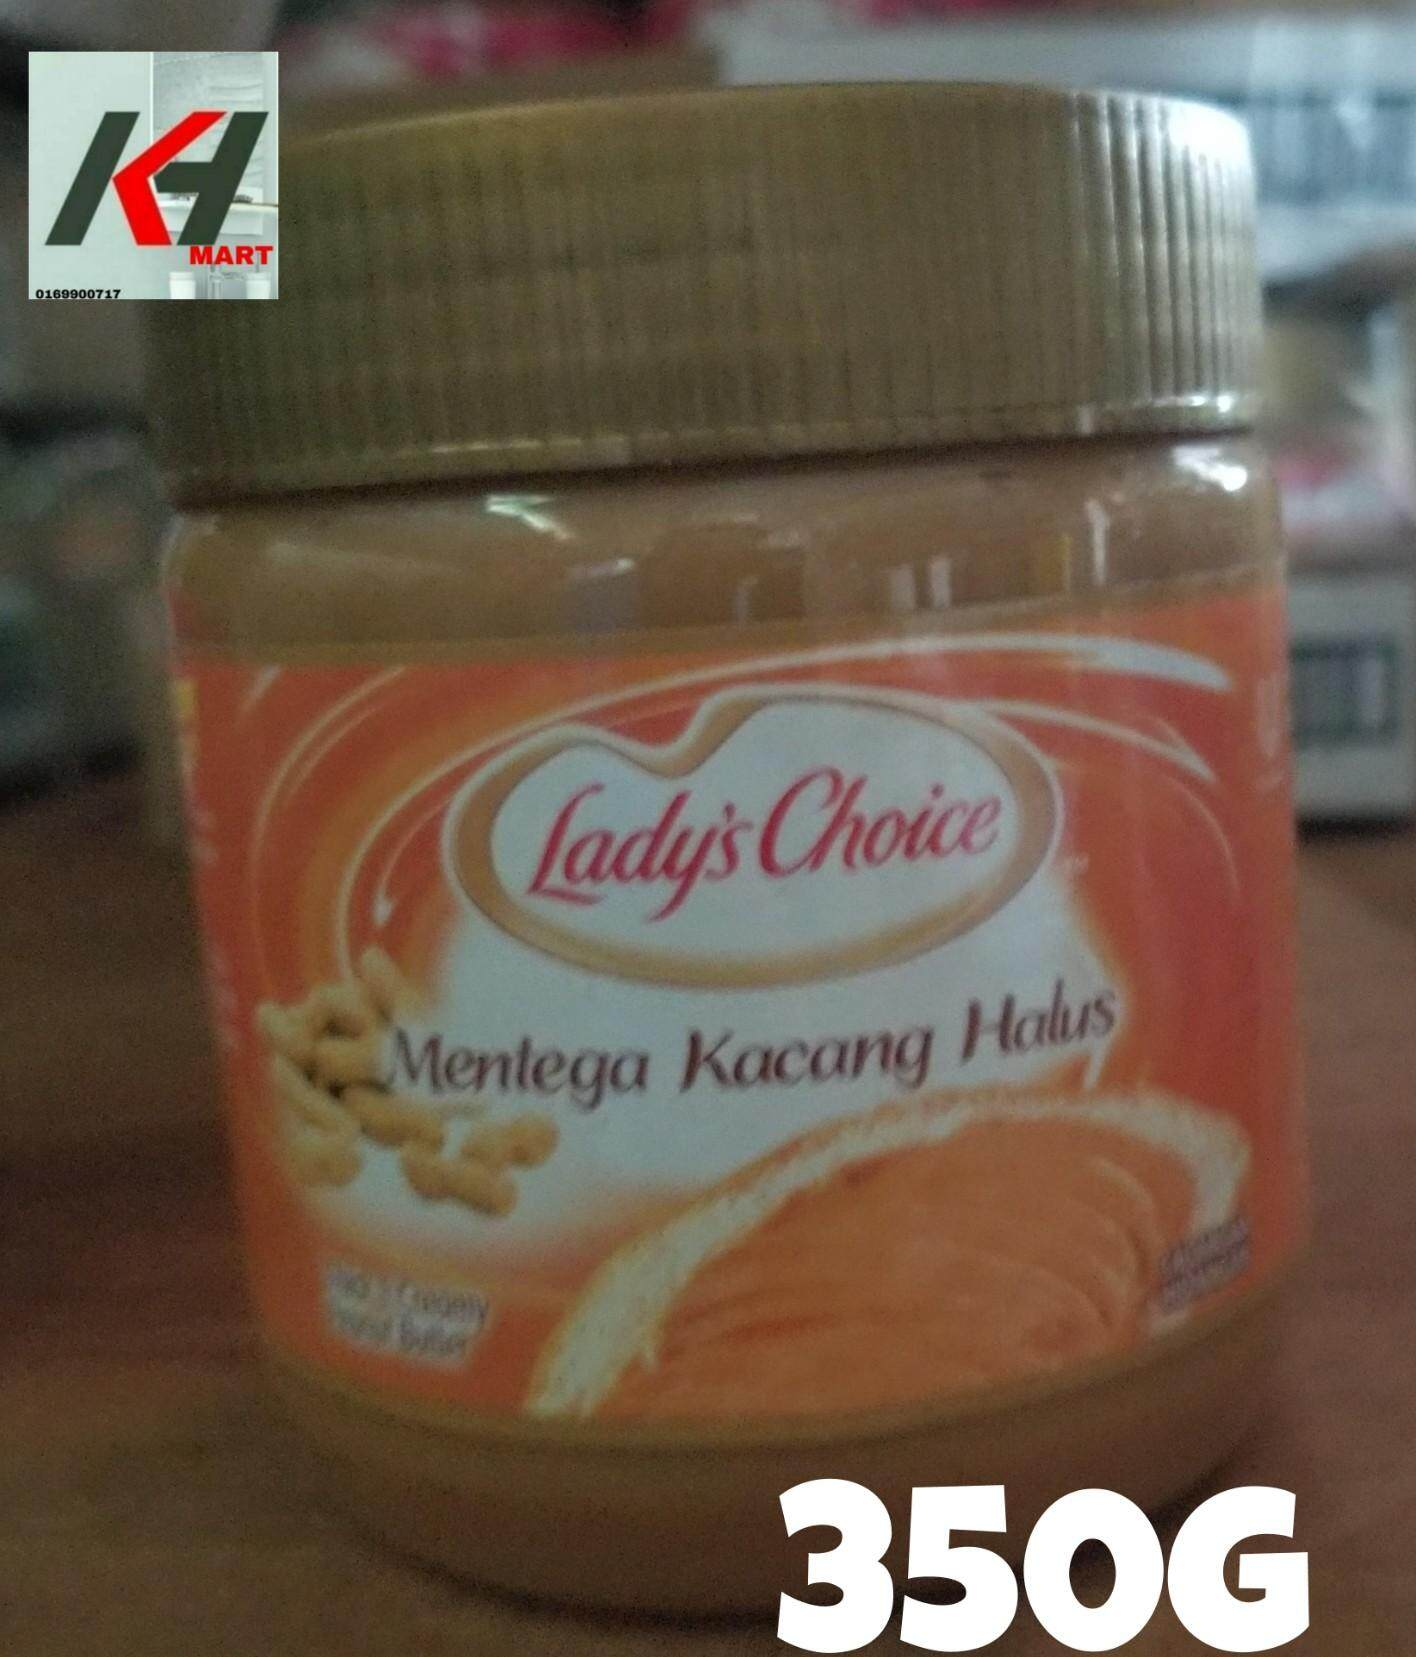 LADY'S CHOICE PEANUT BUTTER (KACANG HALUS) - 340G READY STOCK